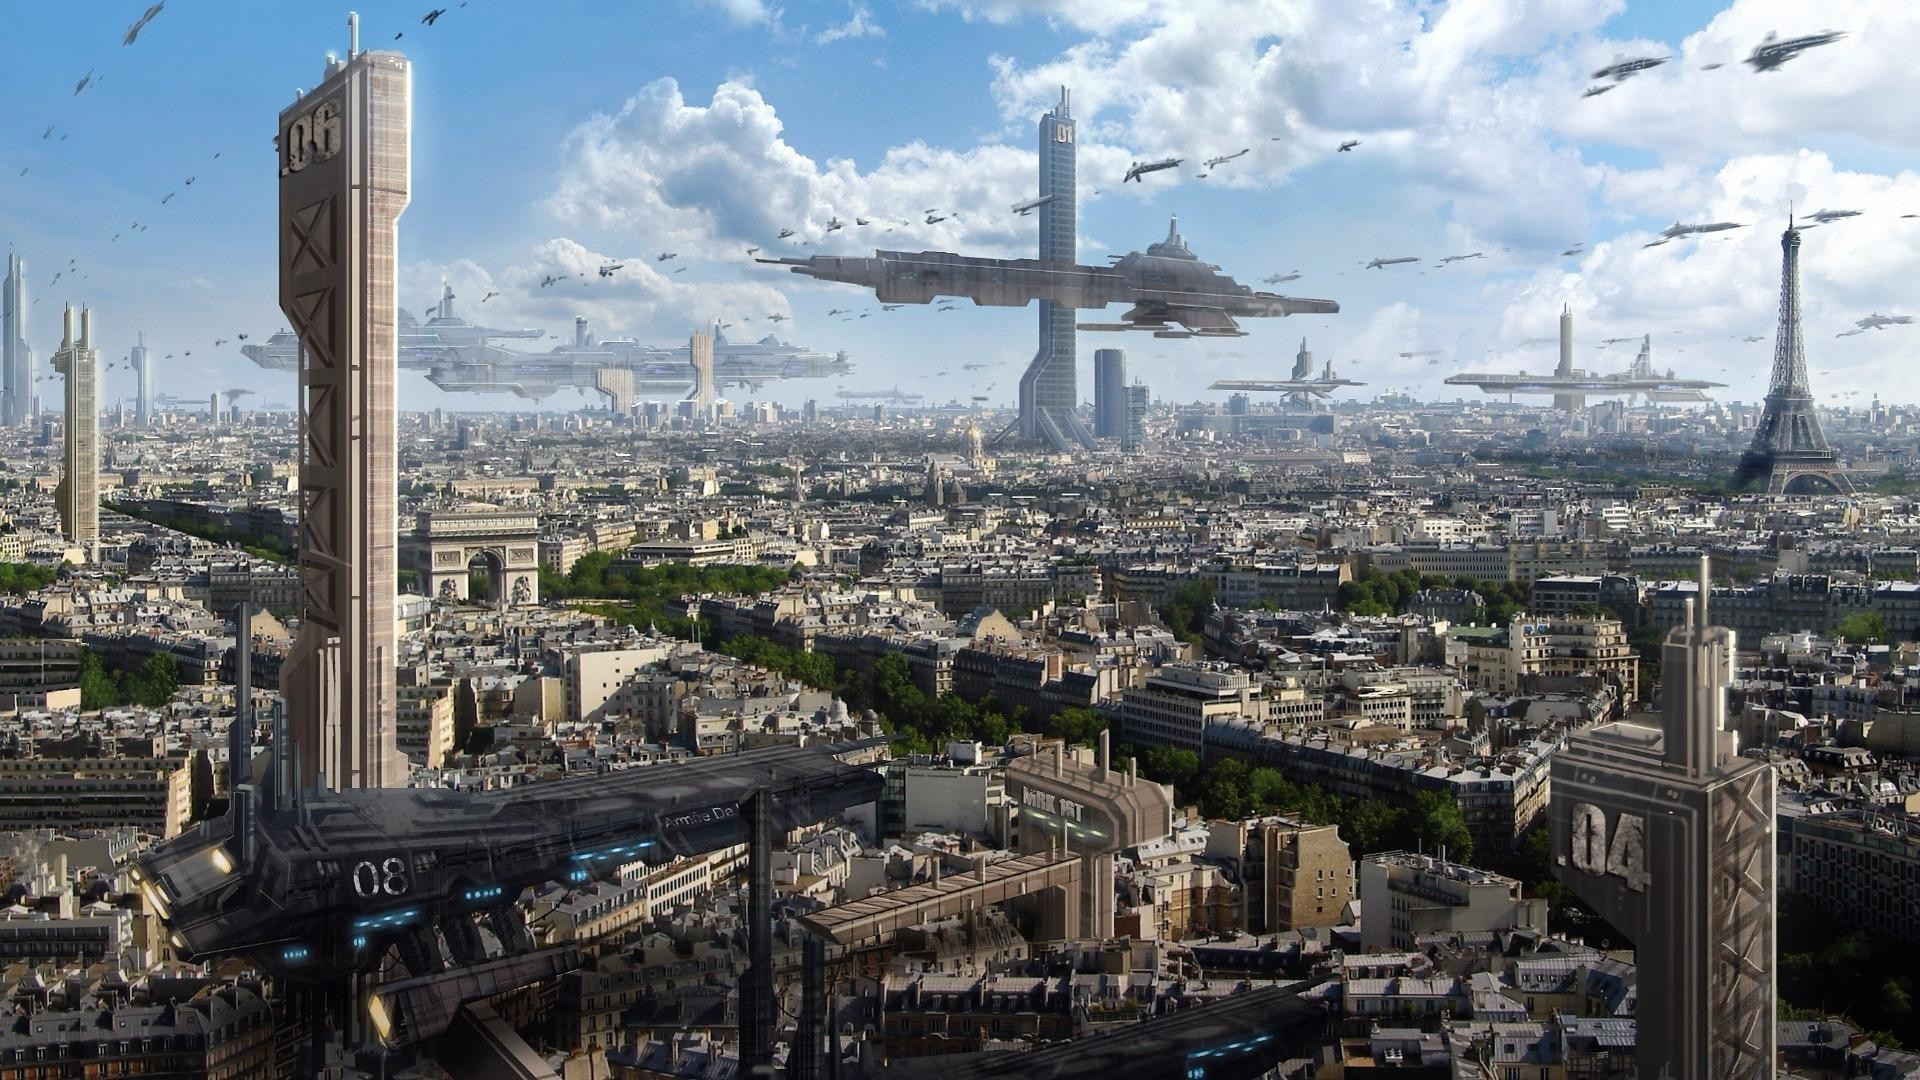 Res: 1920x1080, The Future Of Paris Wallpaper | Wallpaper Studio 10 | Tens of thousands HD  and UltraHD wallpapers for Android, Windows and Xbox